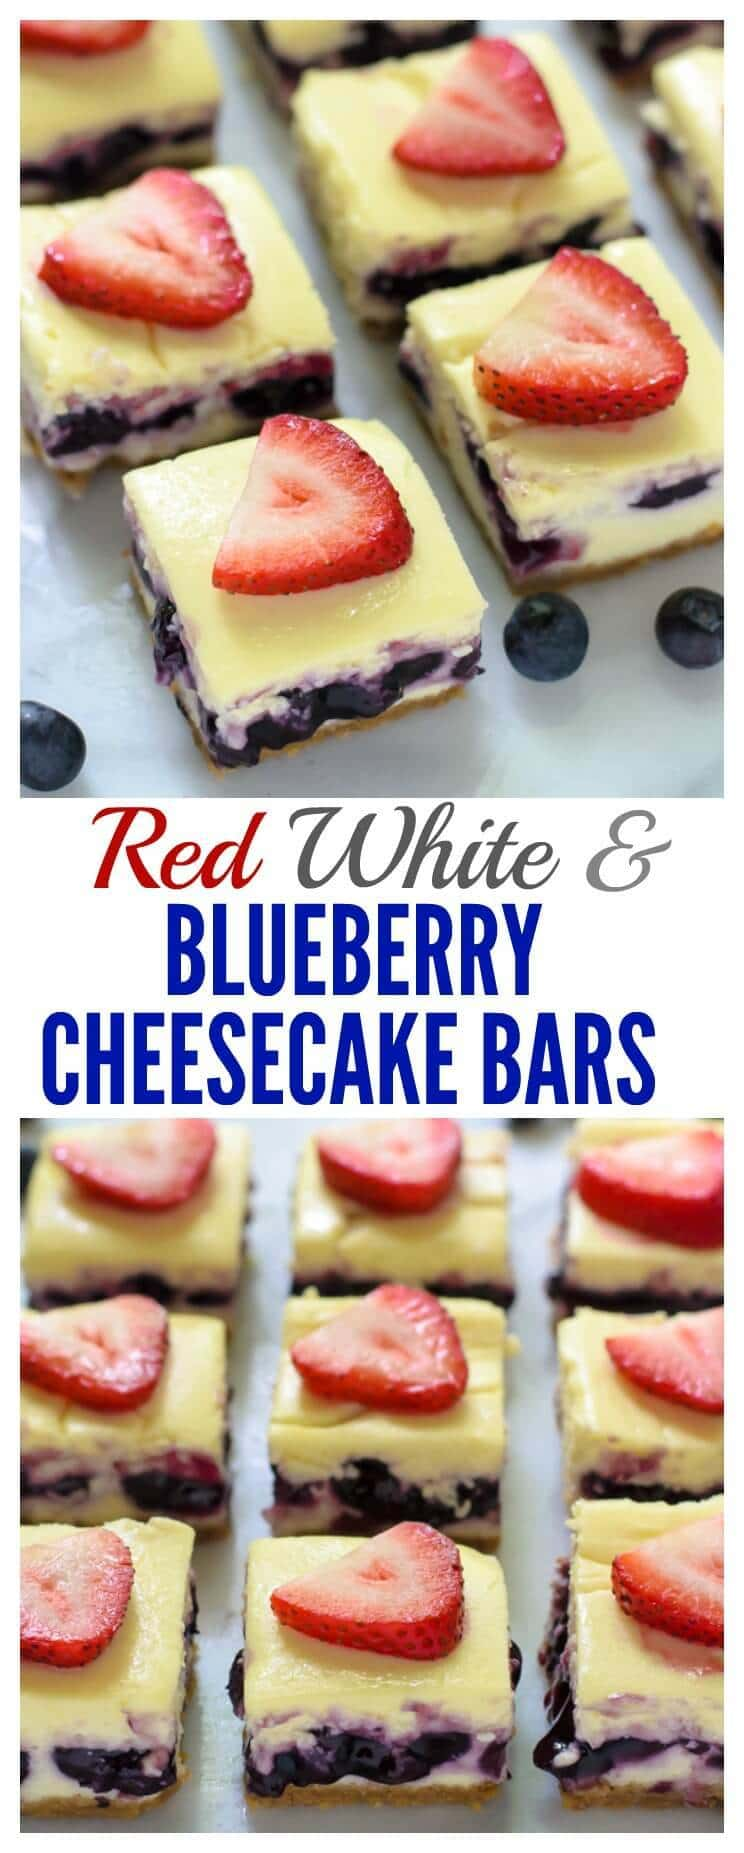 Red White and Blueberry Cheesecake Bars. The perfect red white and ...